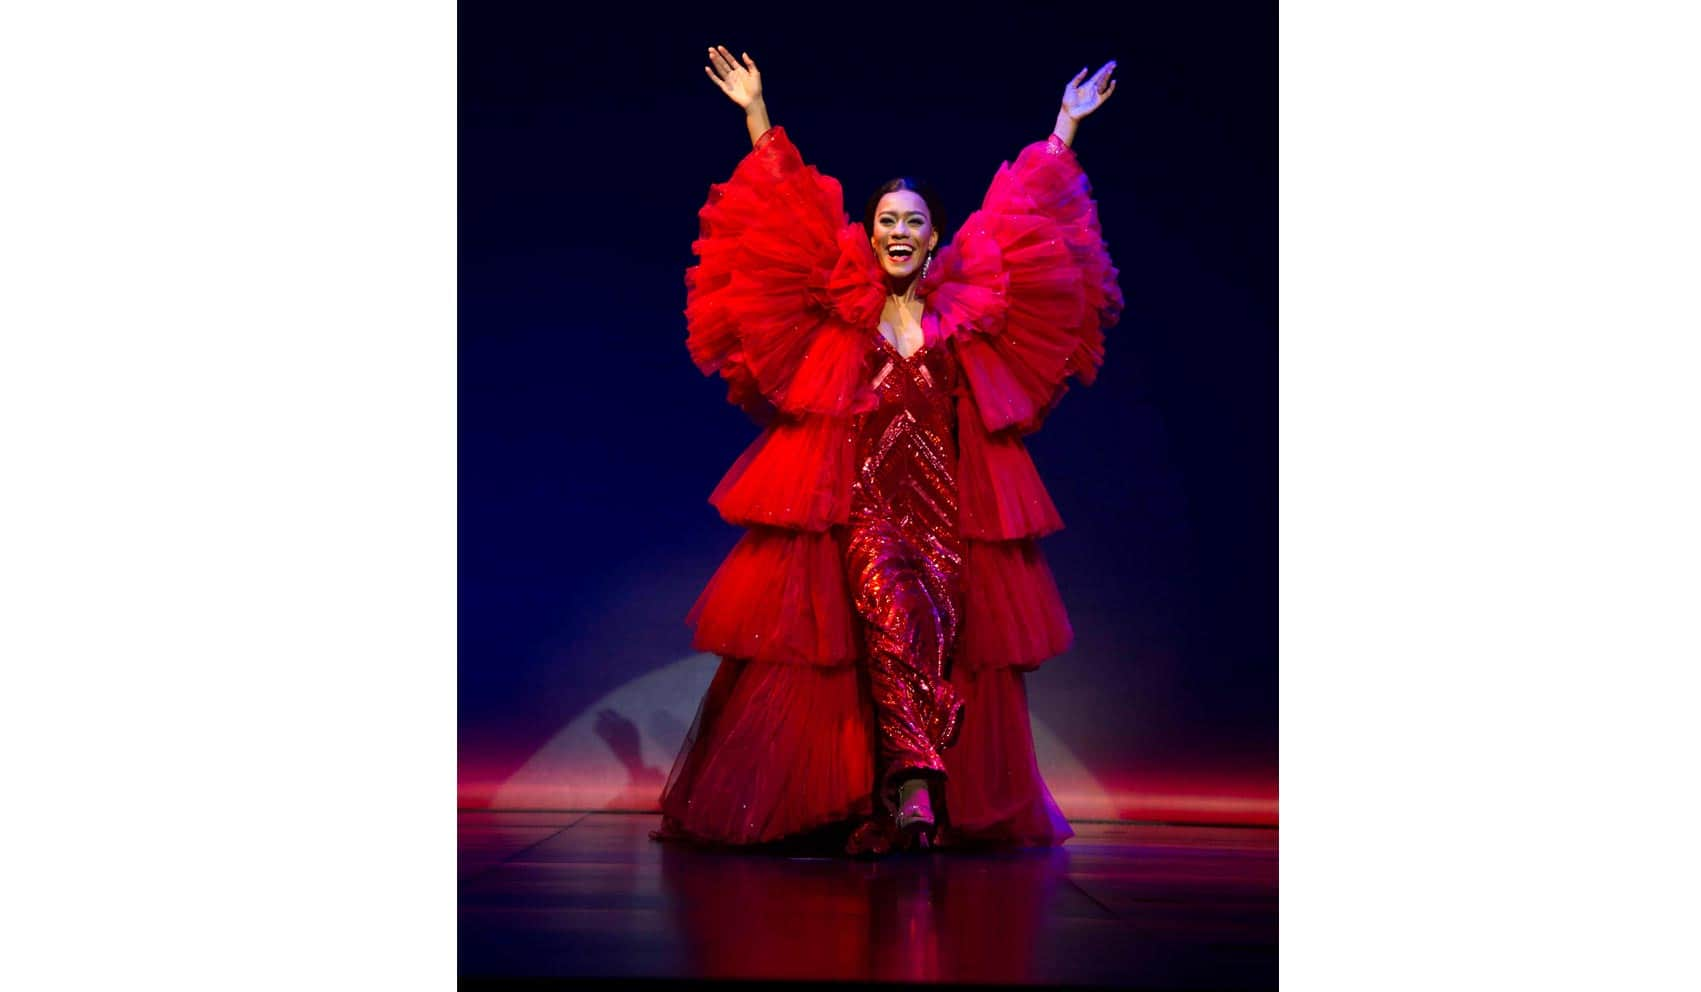 Lucy St. Louis (Diana Ross) in Motown the Musical . Photo: Alastair Muir | First Look: Motown the Musical